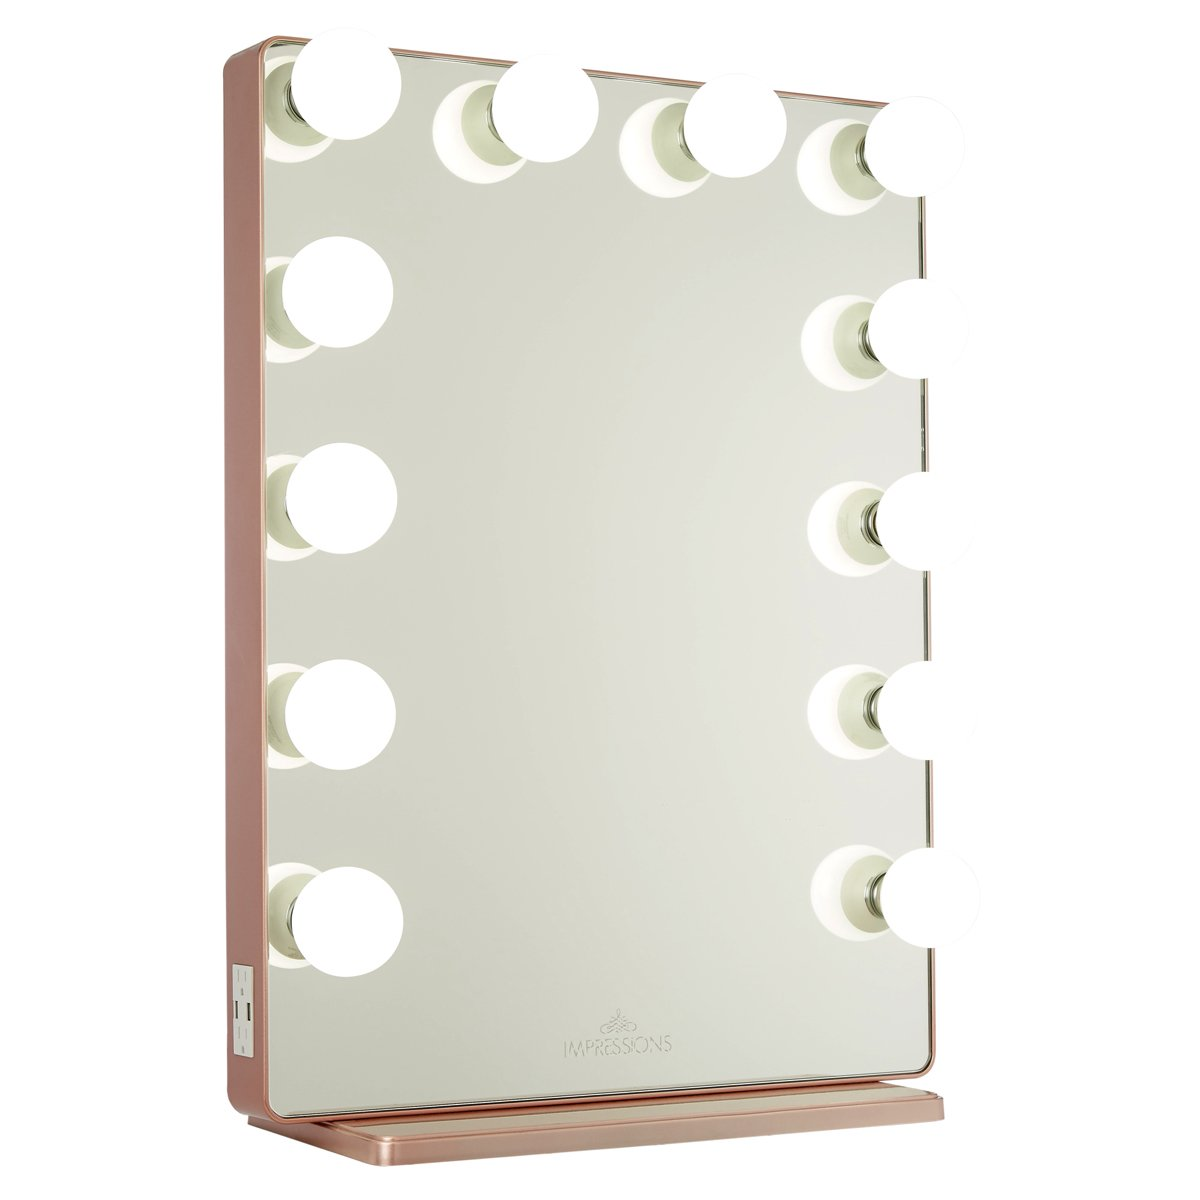 Rose Gold Vanity Mirror w/ Frosted LED Light Bulbs